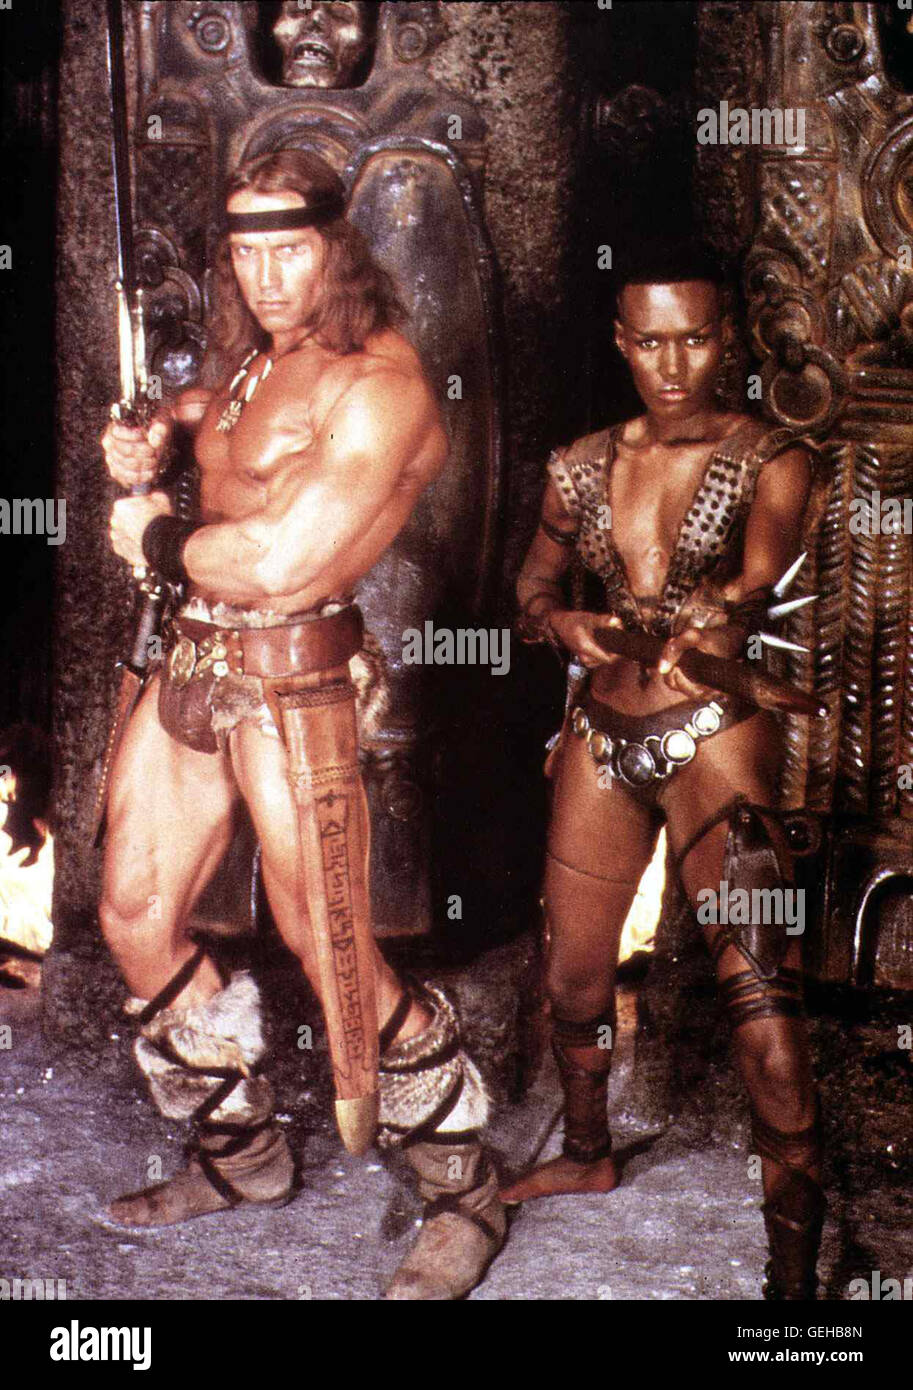 Arnold schwarzenegger grace jones unexpectedness!